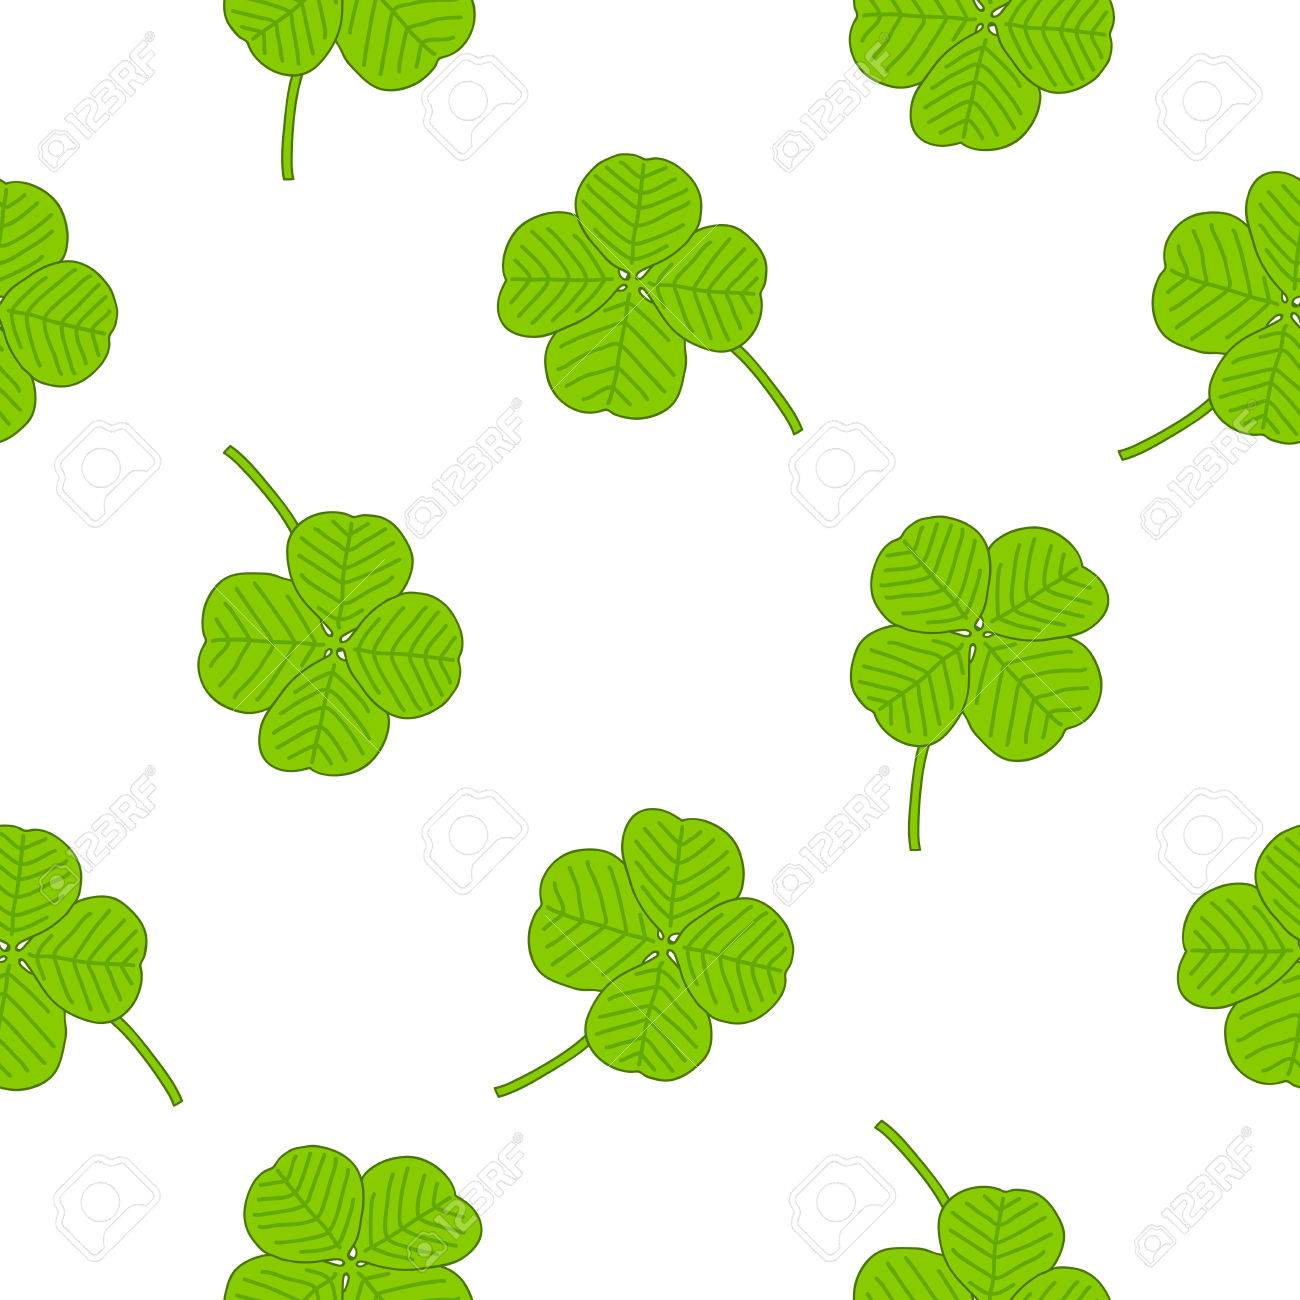 seamless pattern of the four leaf clover on a white background